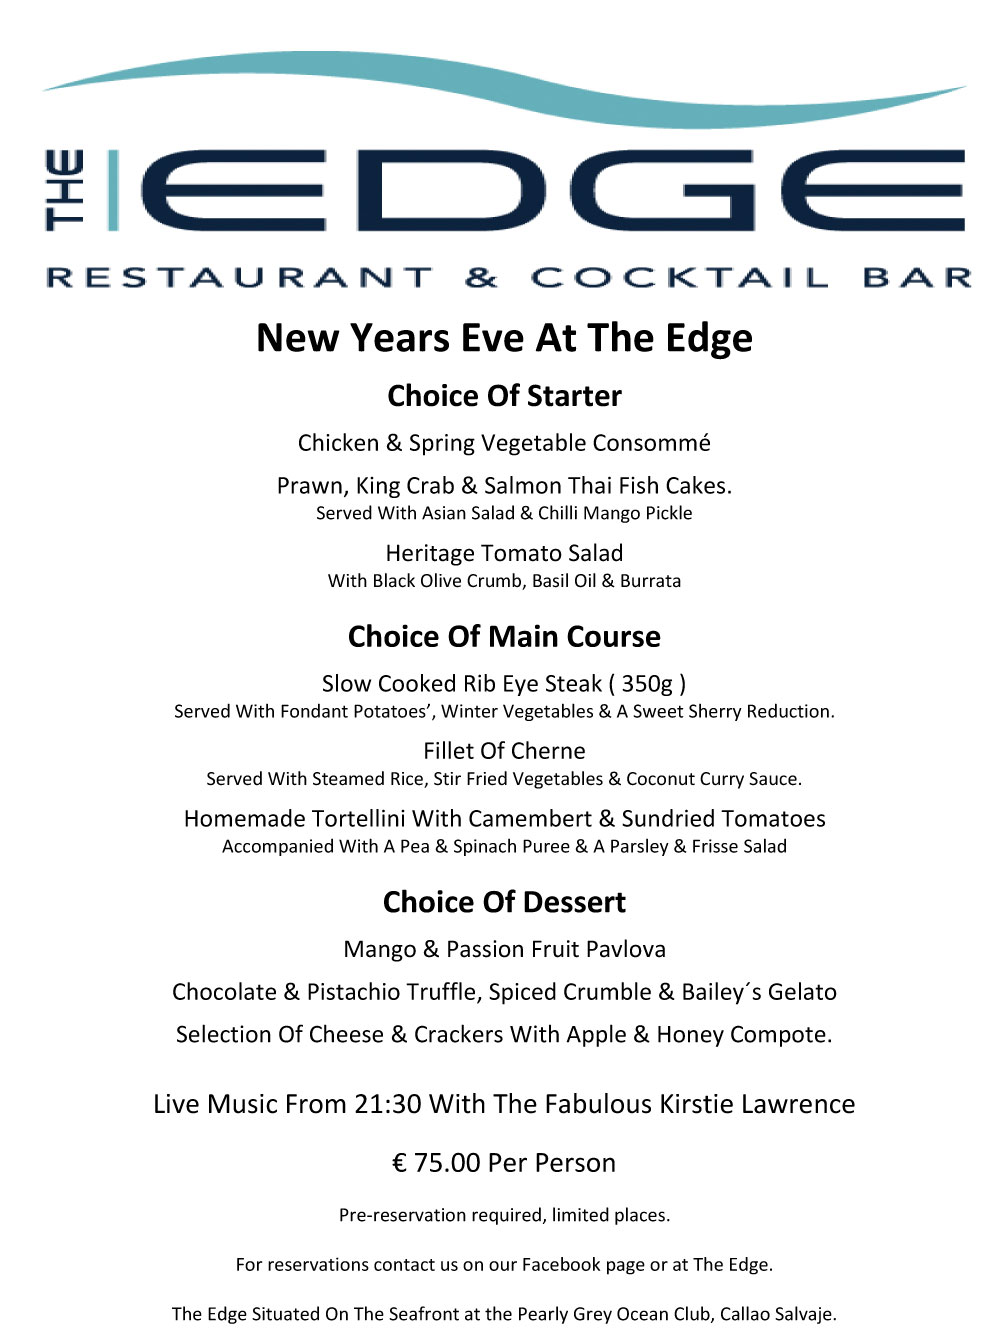 The Edge New Years Eve